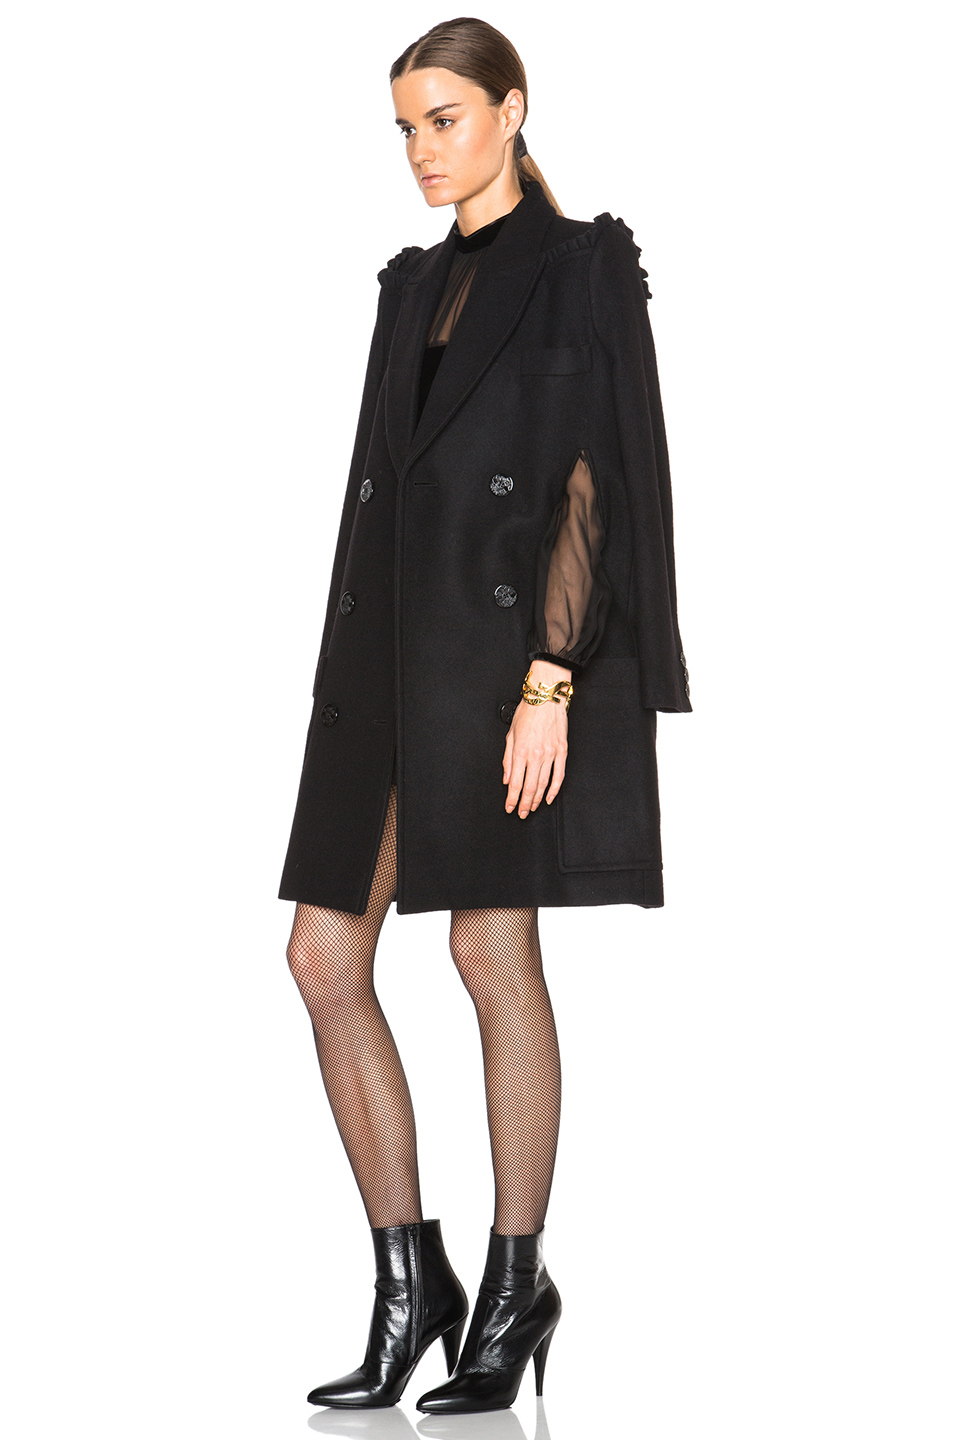 Preen by thornton bregazzi Sasha Wool Cape Coat in Black | Lyst